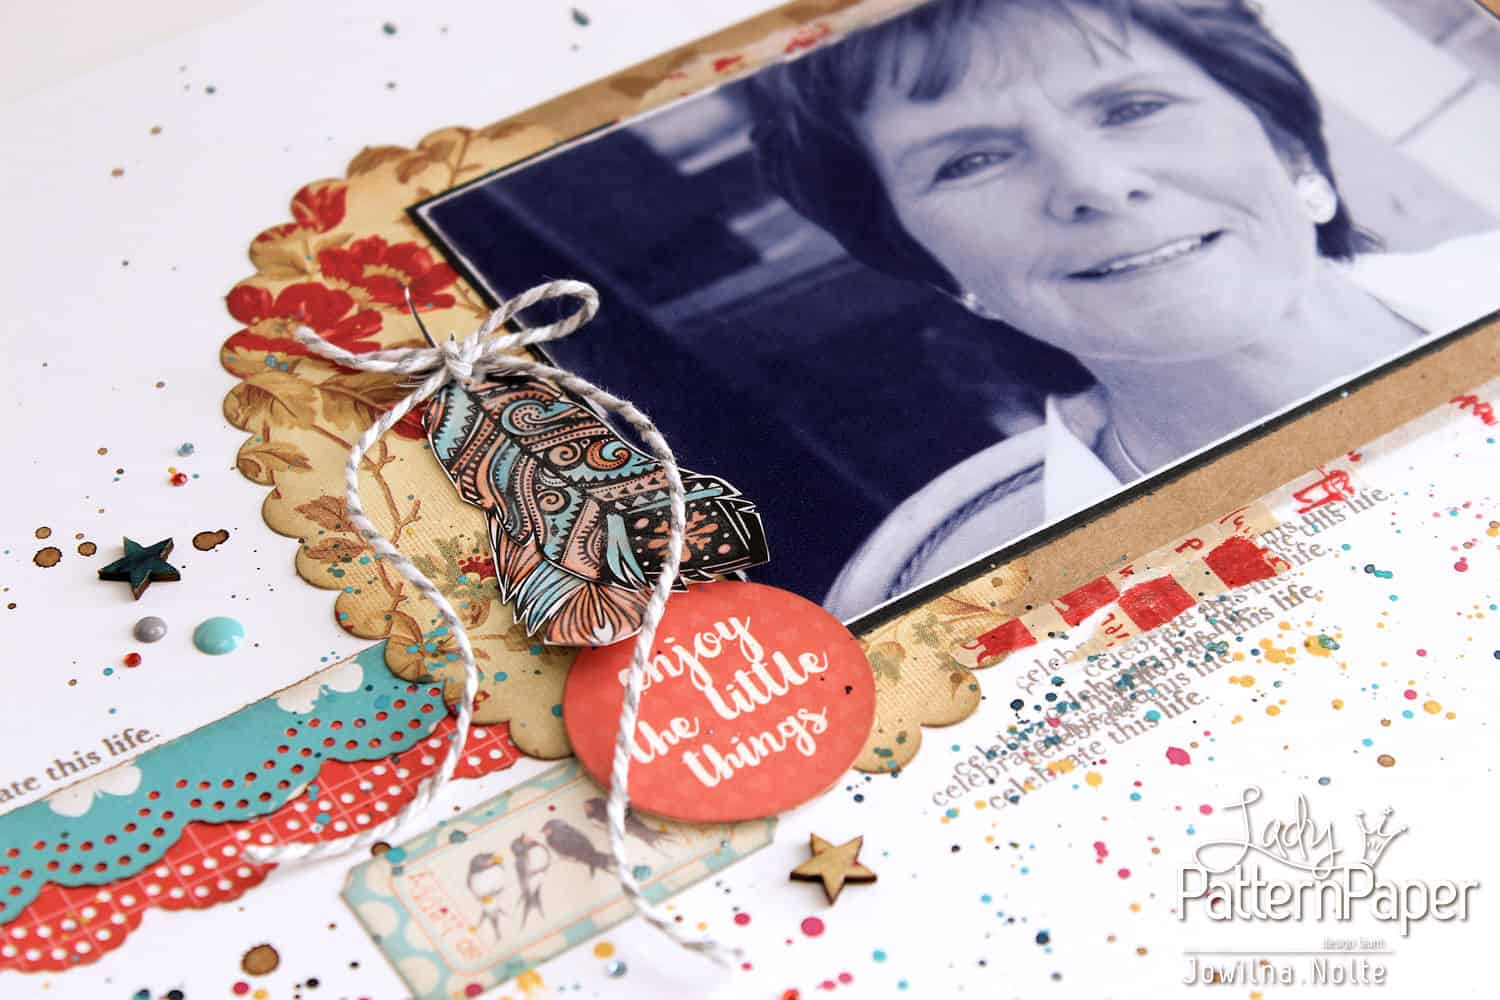 Single Page Layout - Scalloped Details